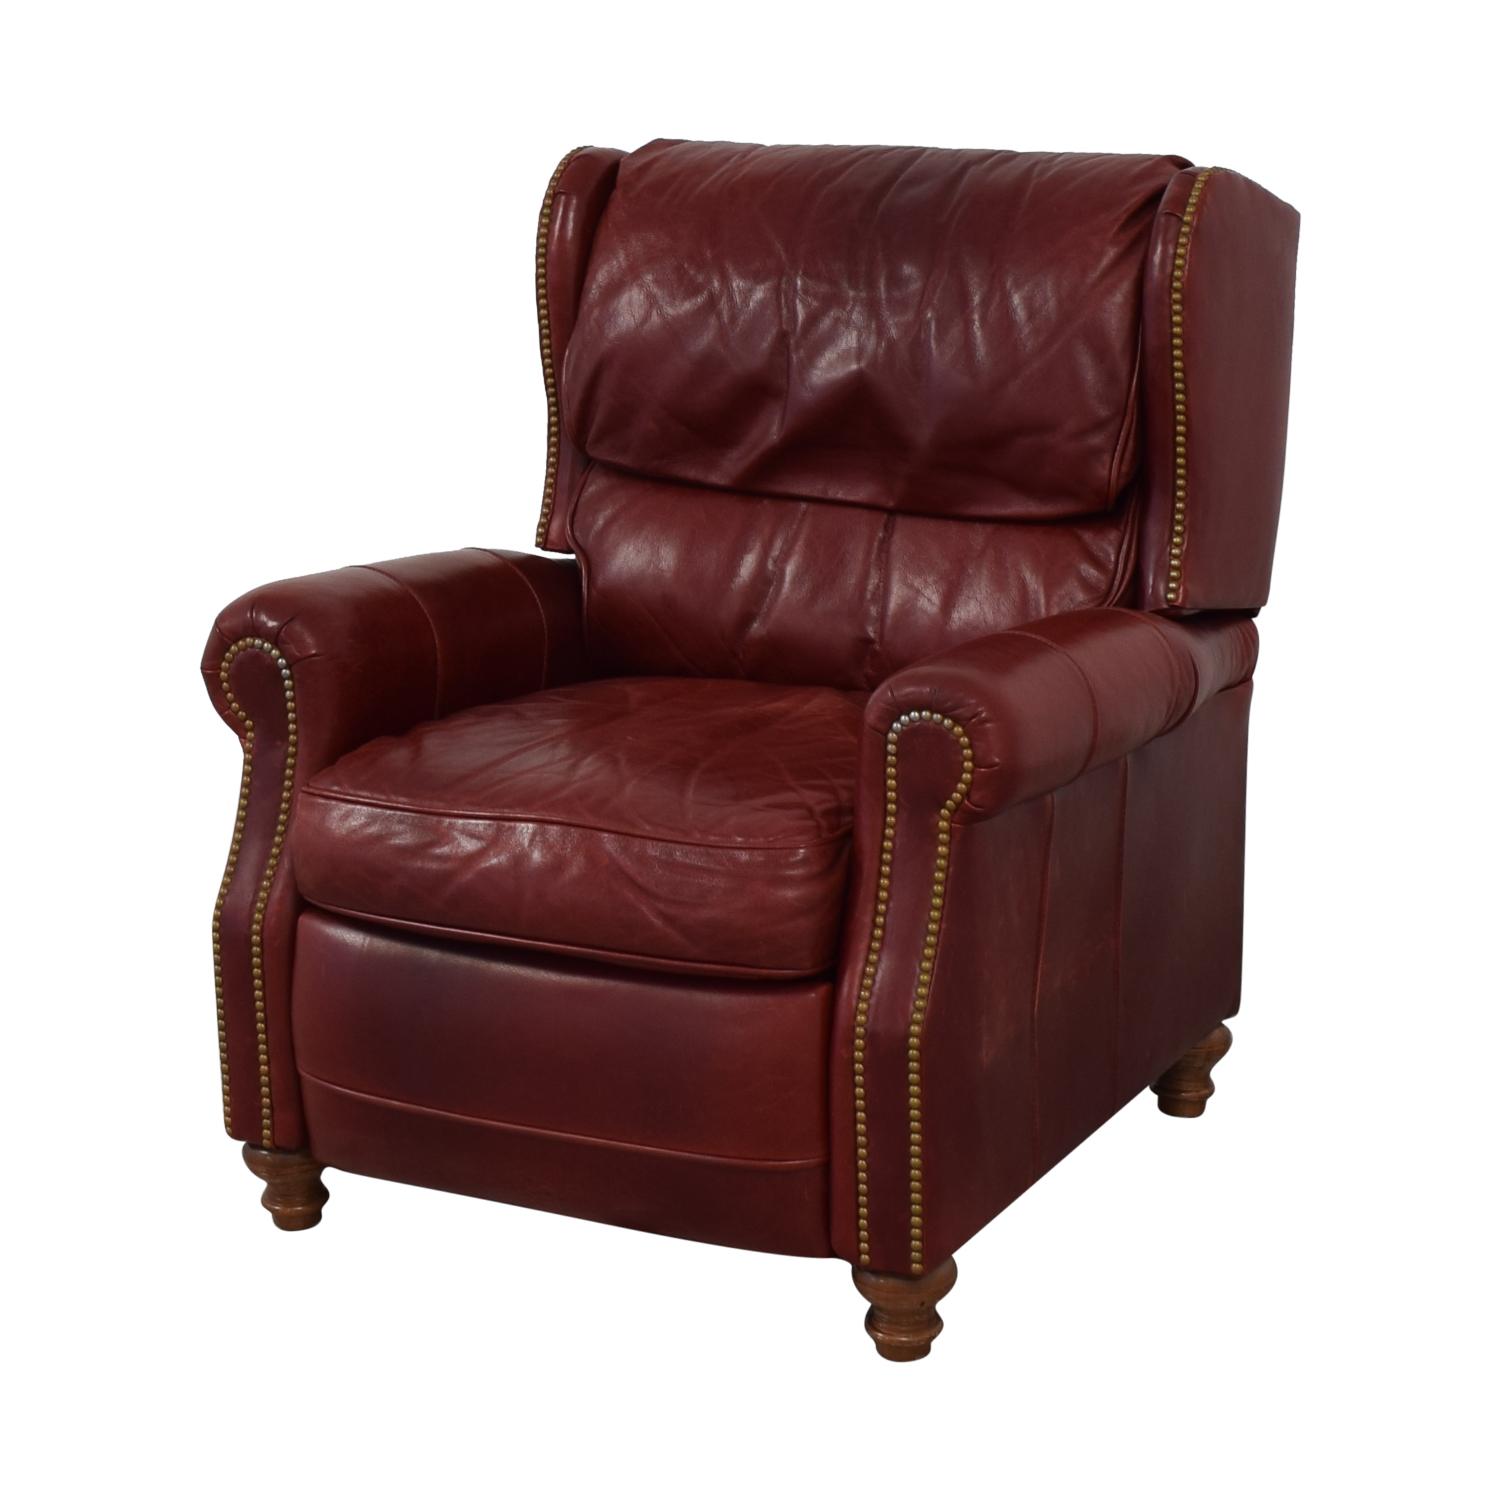 McKinley Leather Furniture McKinley Leather Recliner for sale